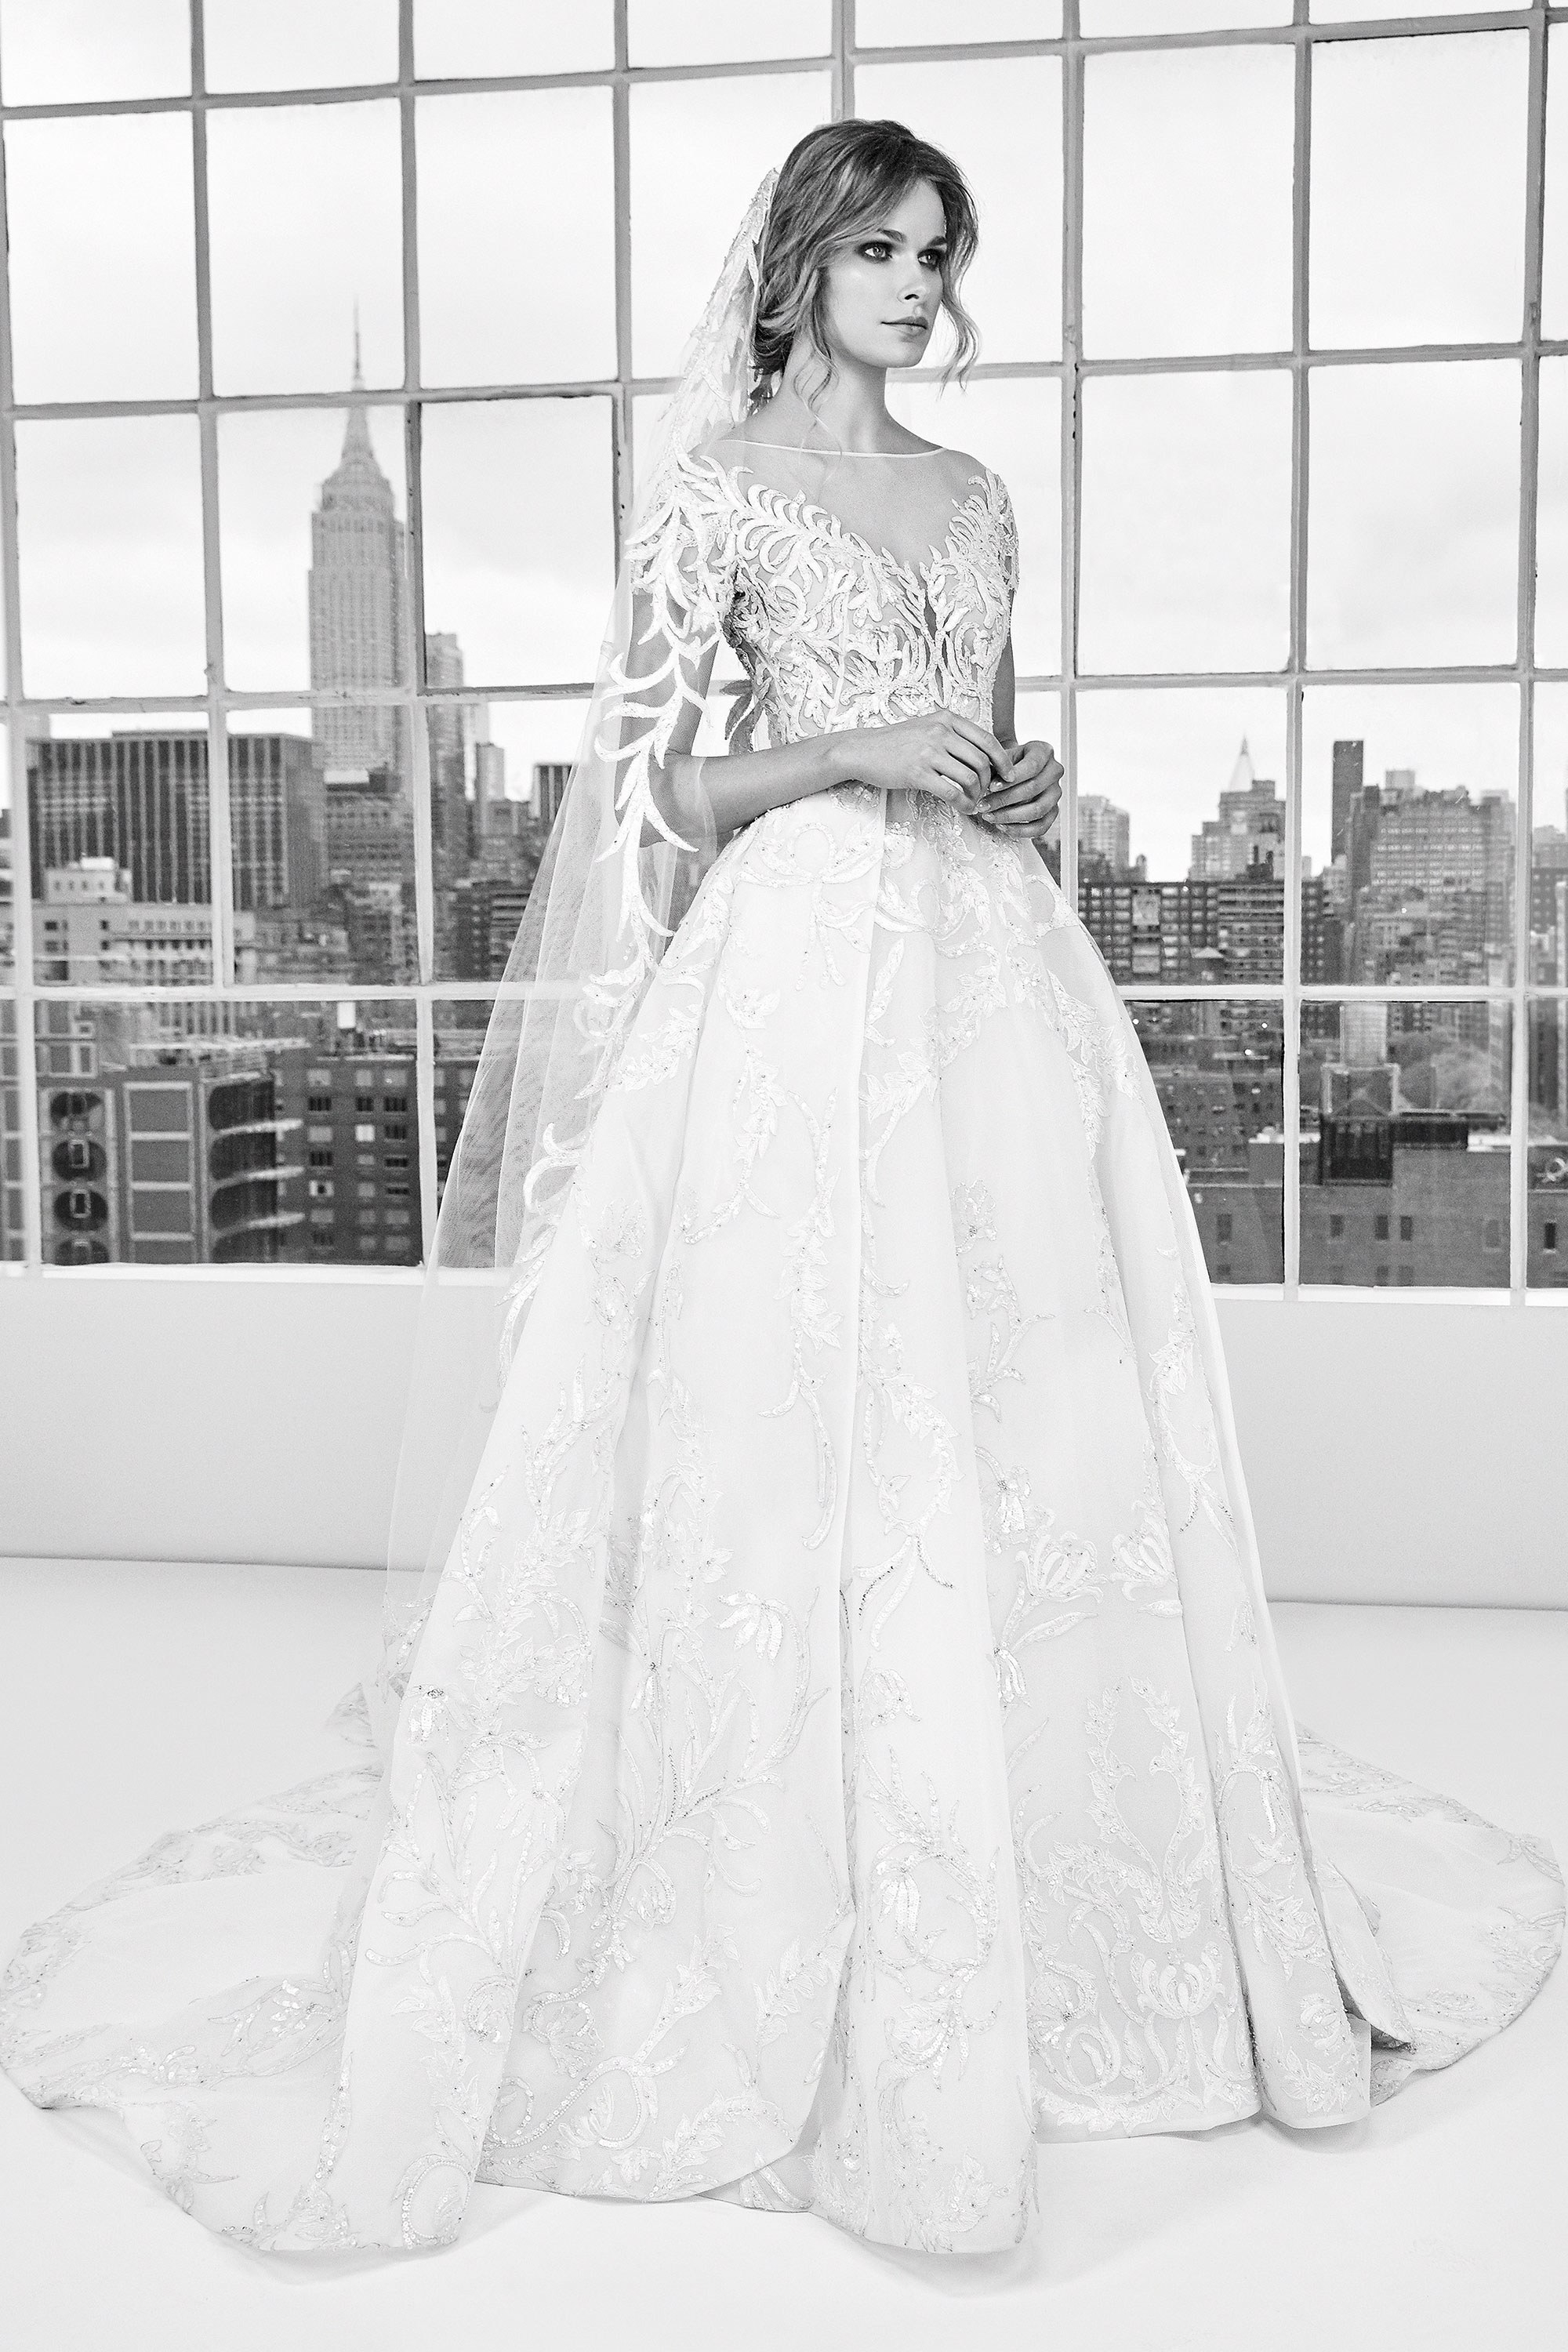 The Zuhair Murad 2018 Spring Wedding Dress Collection - Arabia Weddings